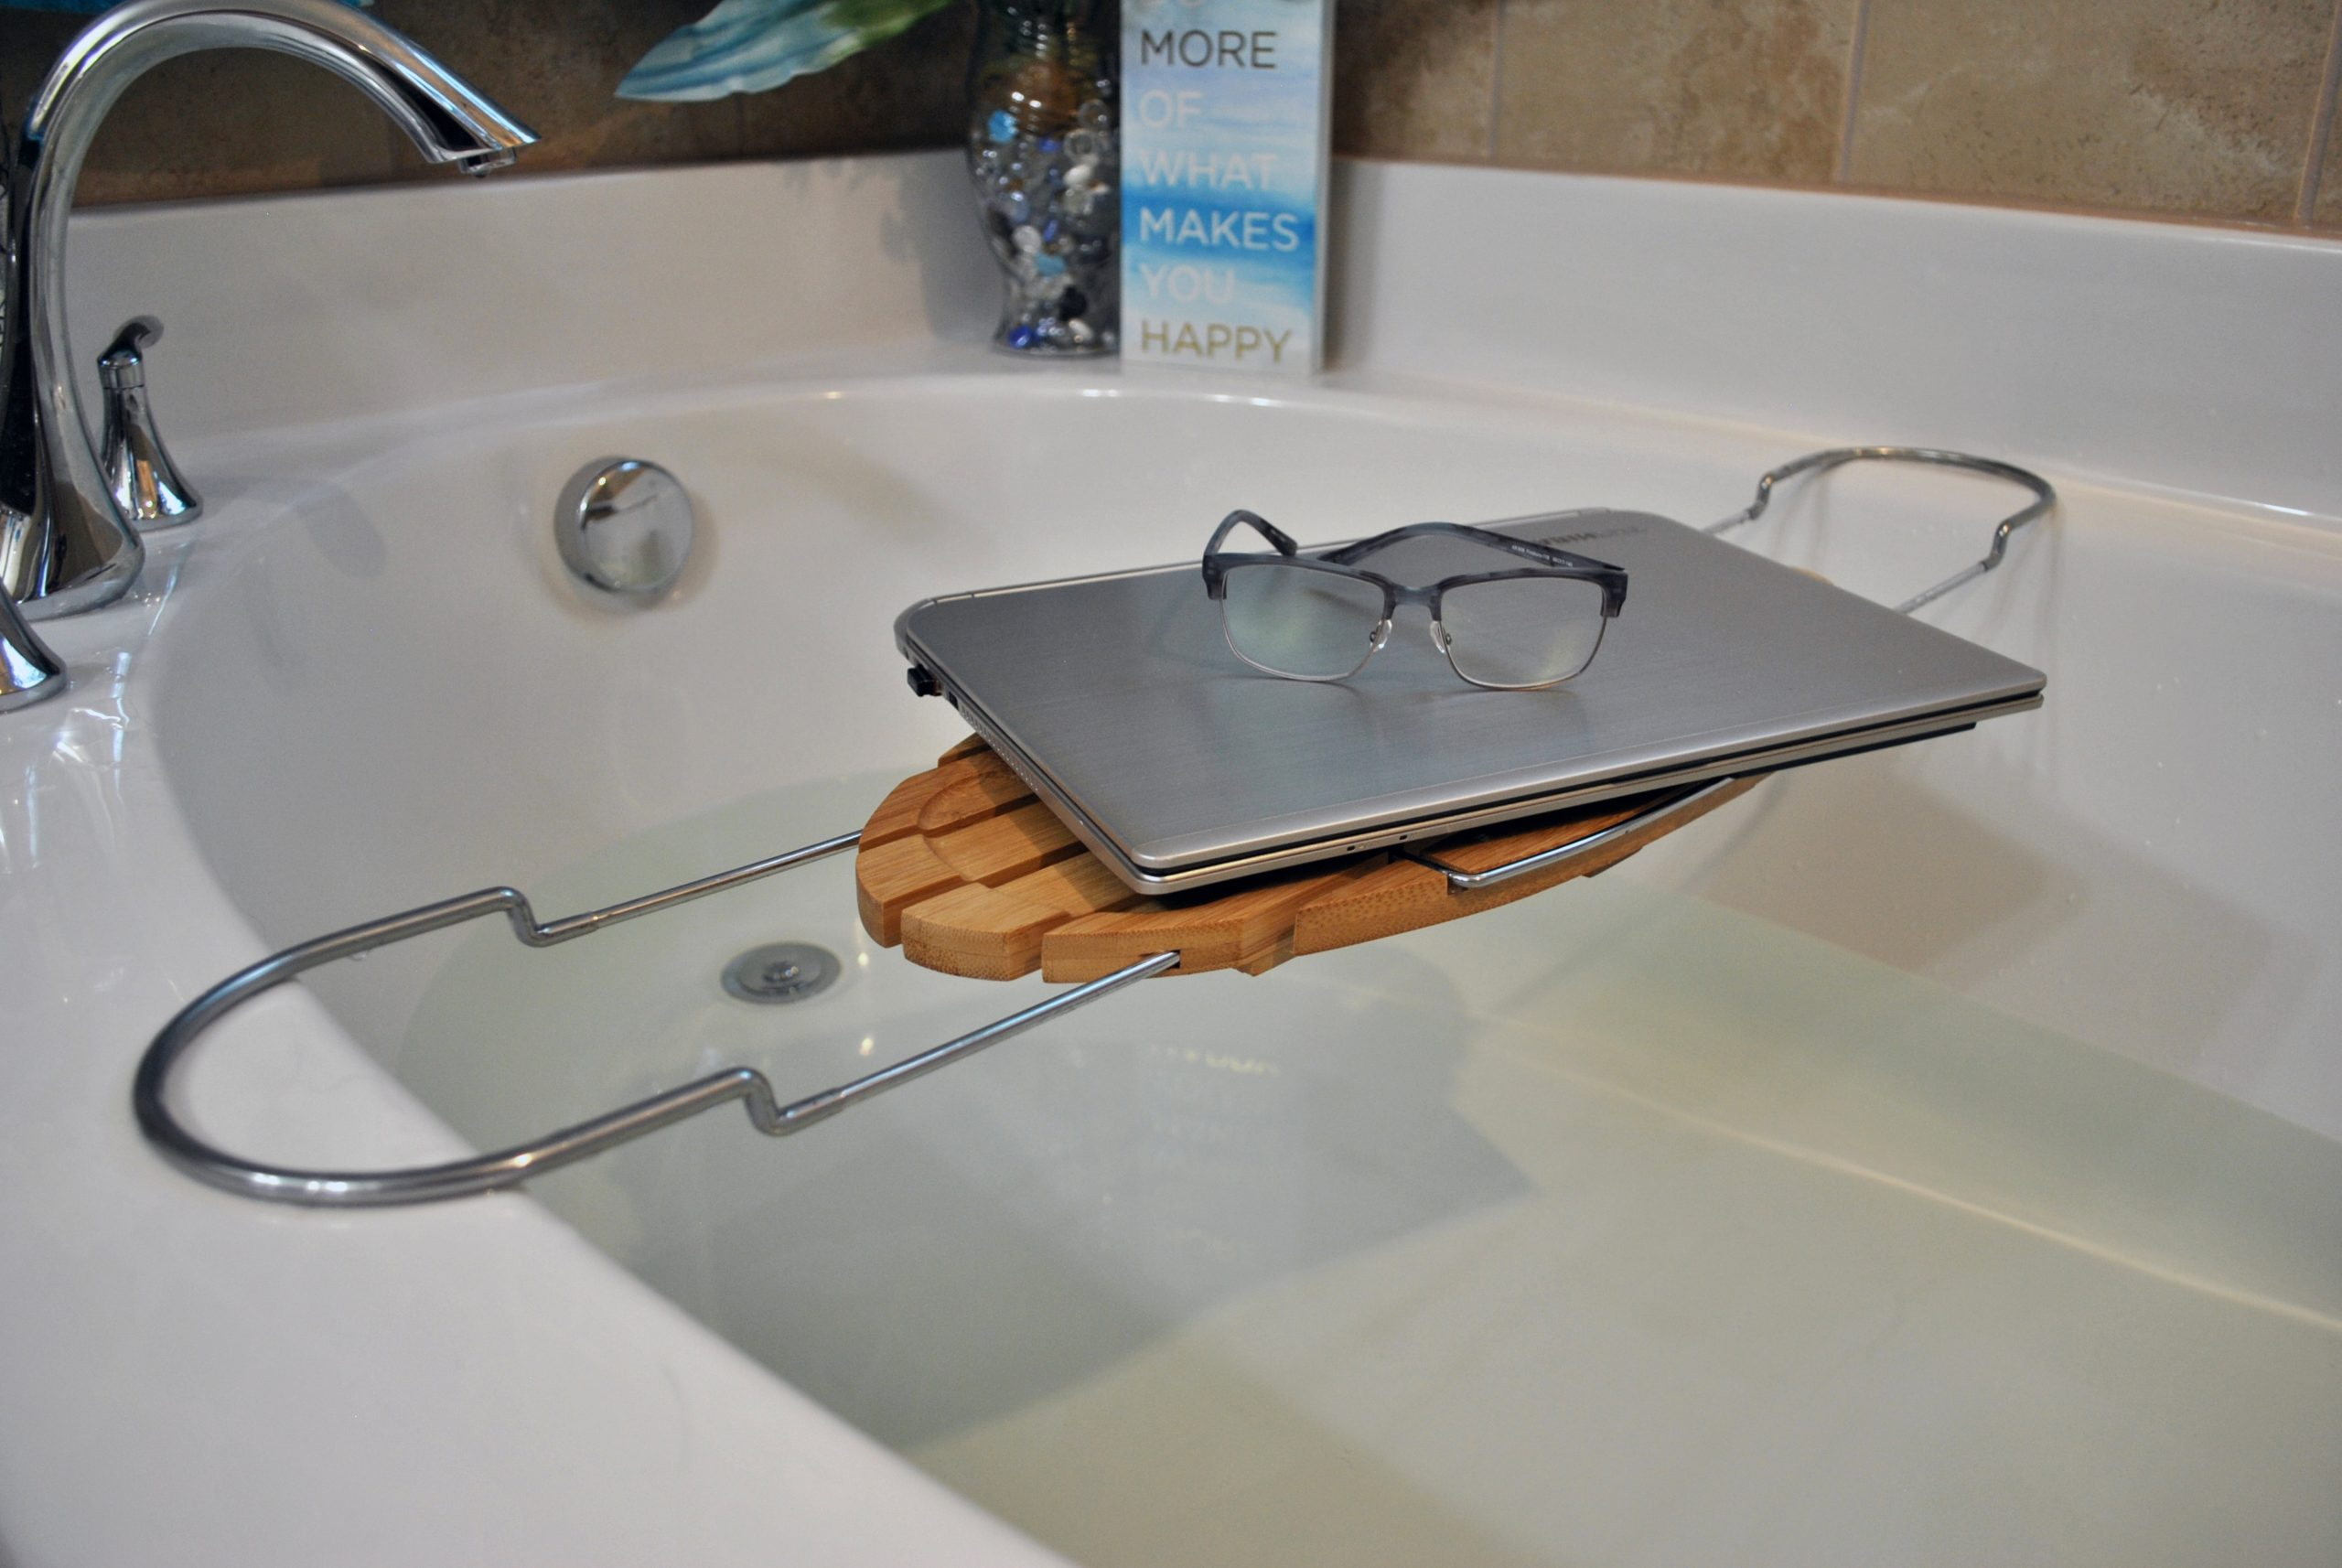 bathtub tray for laptop